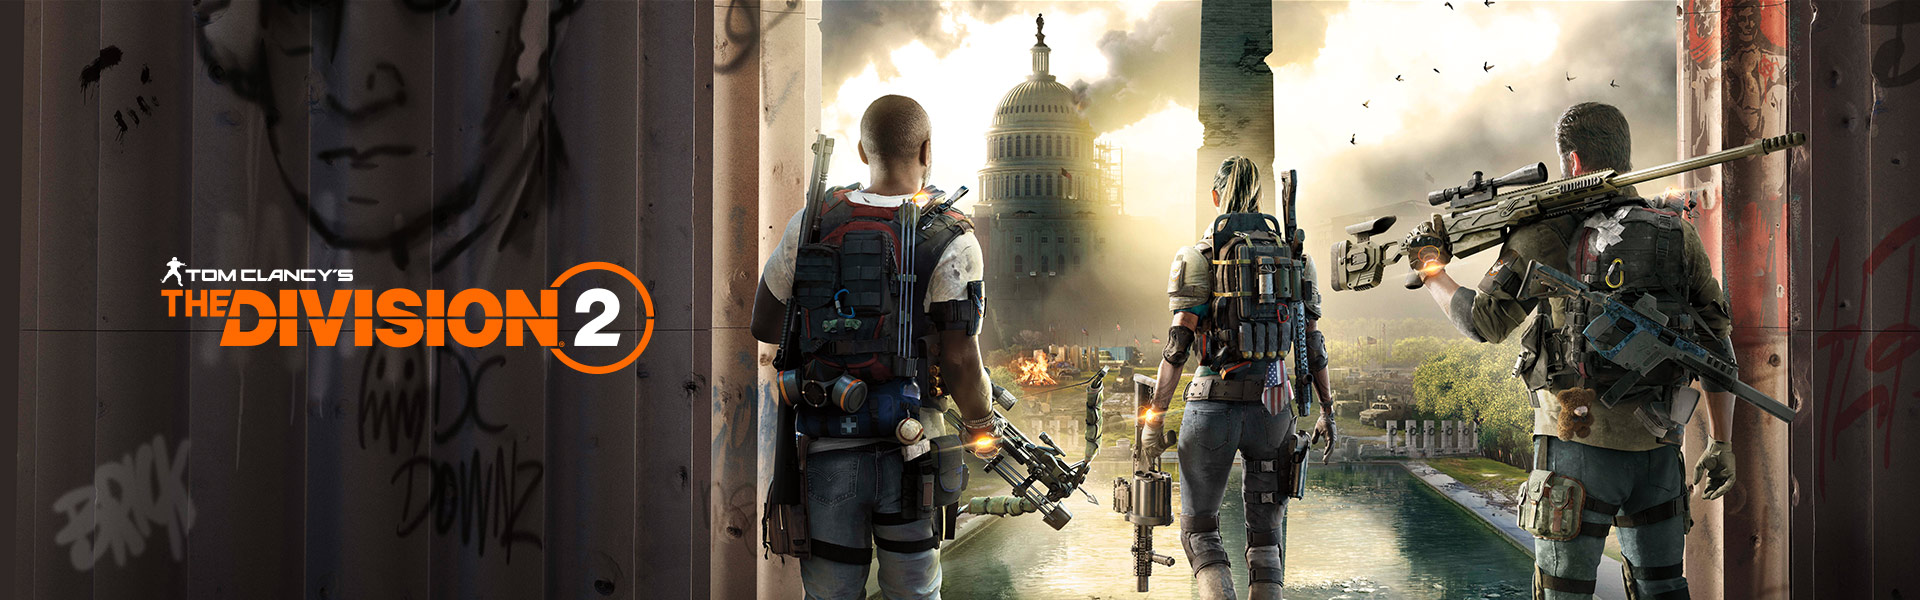 Tom Clancy's The Division 2, Trois personnes lourdement armées regardent un Washington D.C. ravagé